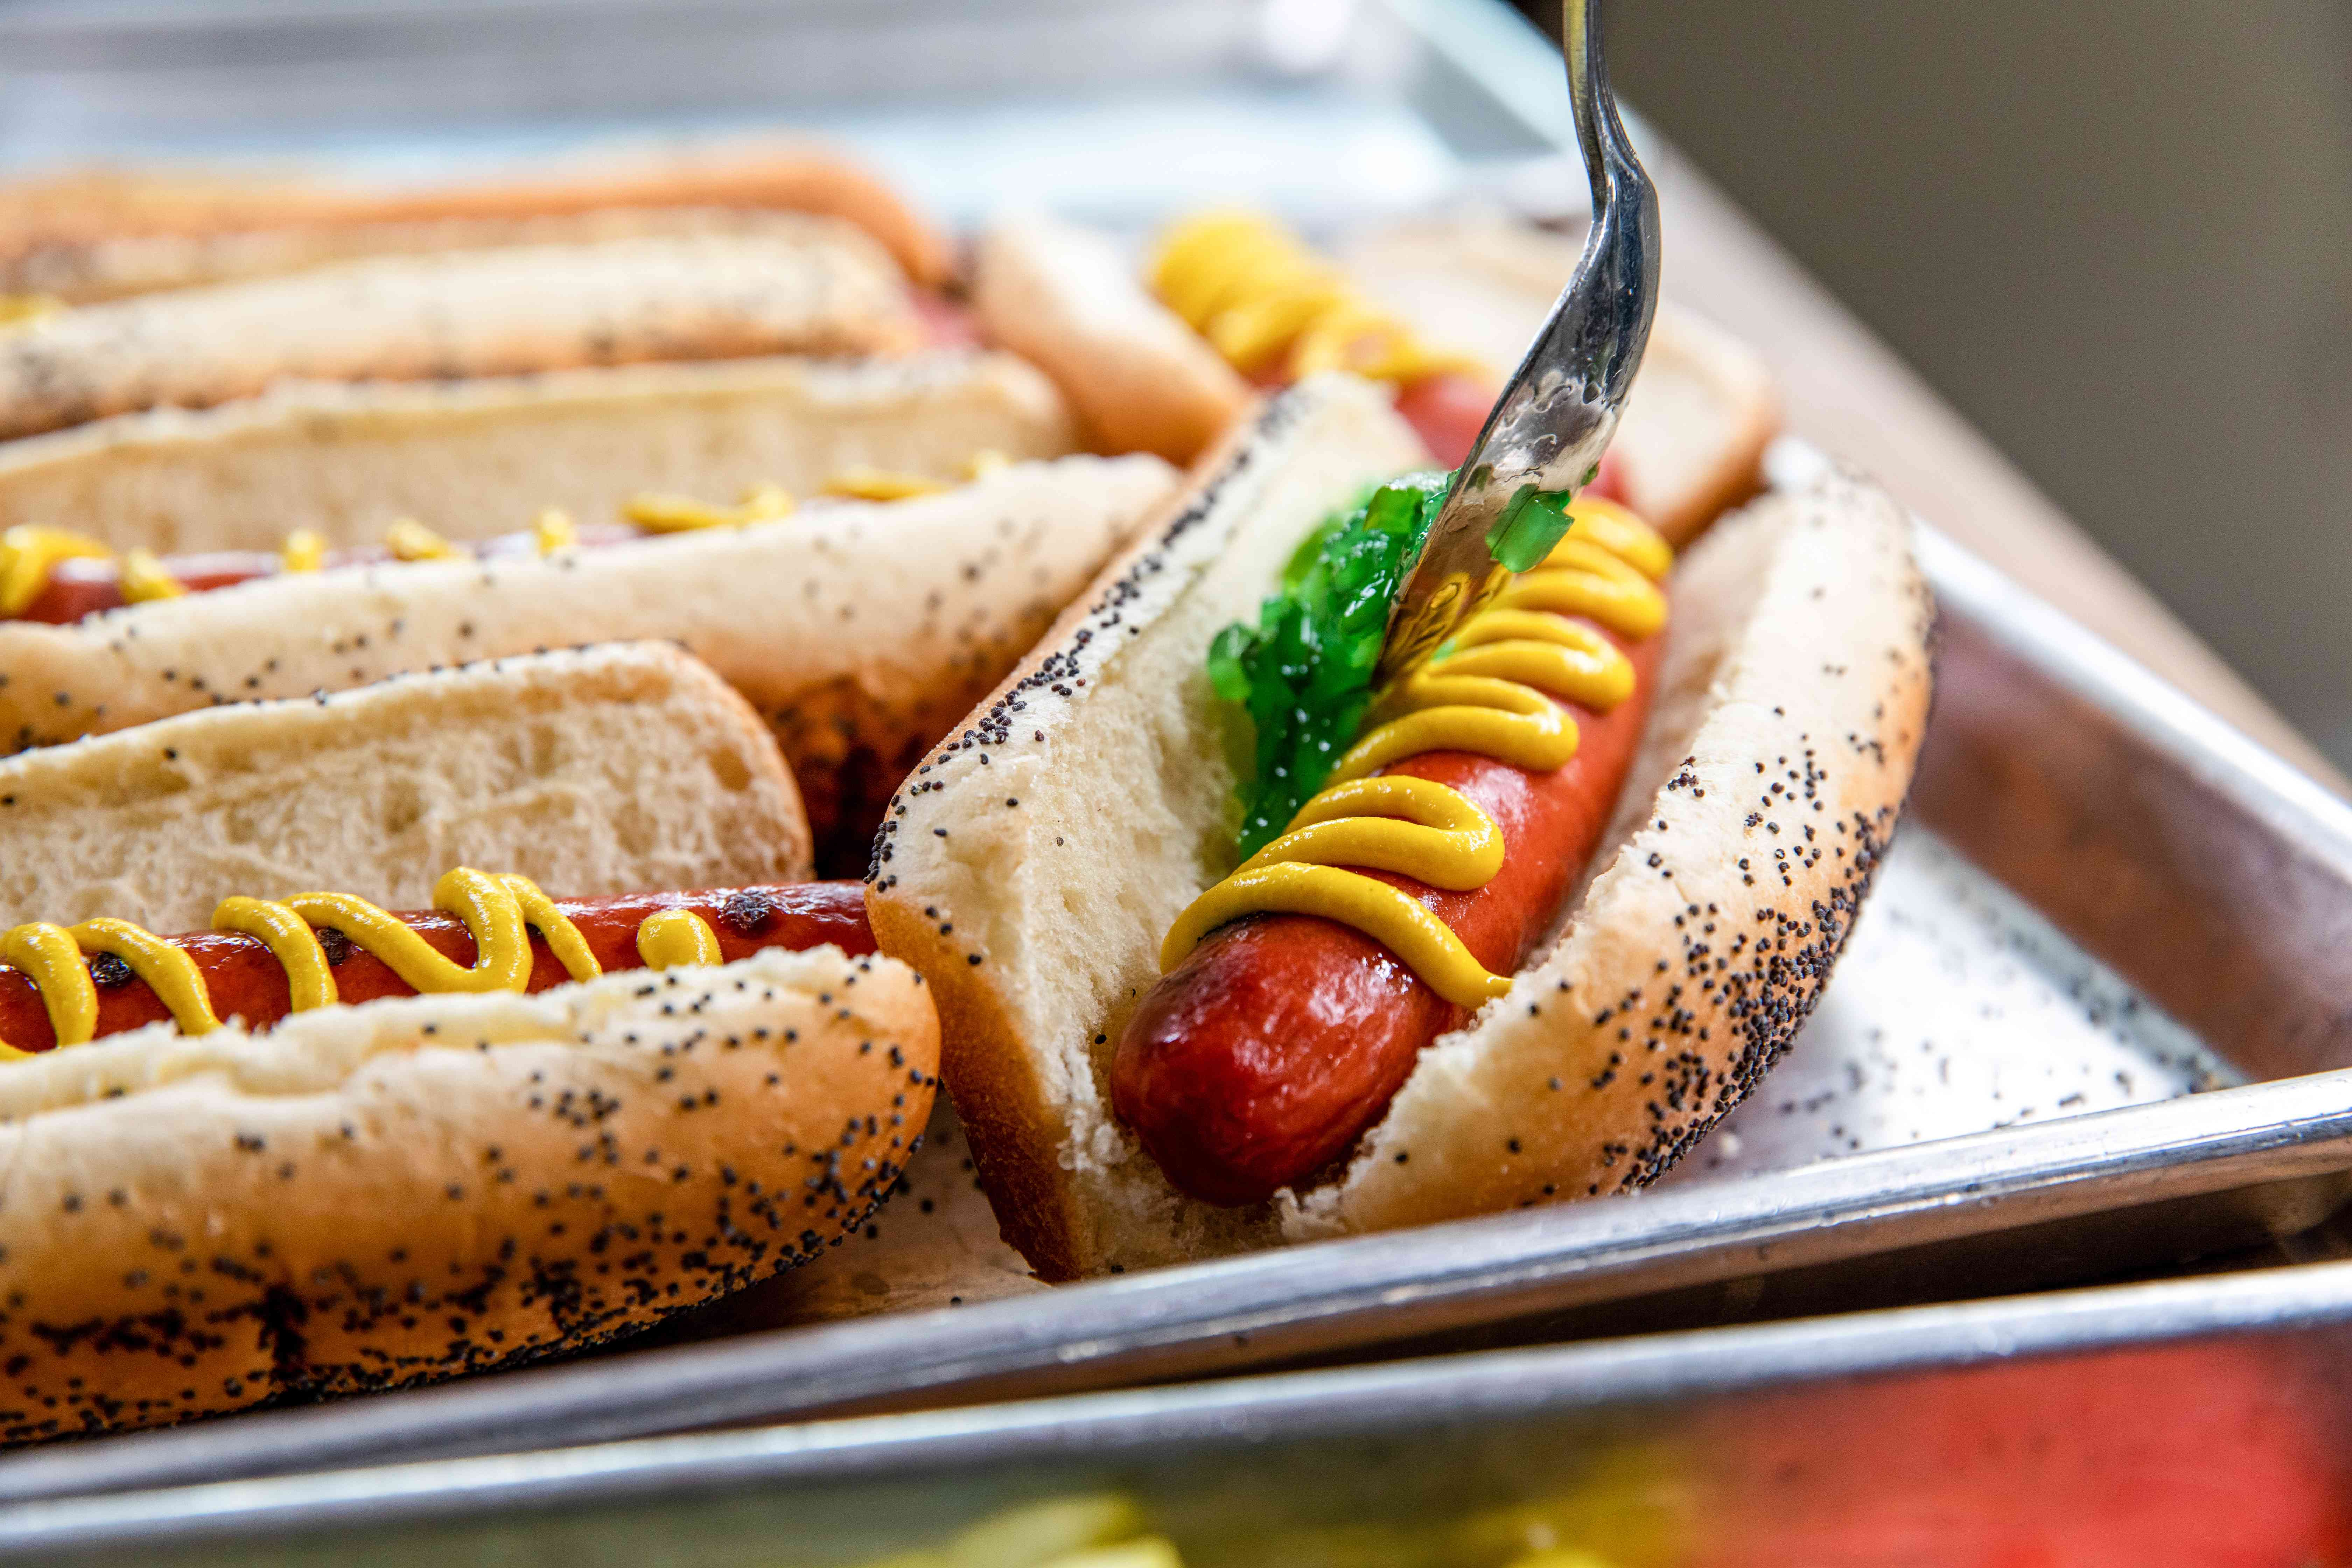 Topping a Chicago hot dog with mustard and sweet pickle relish.